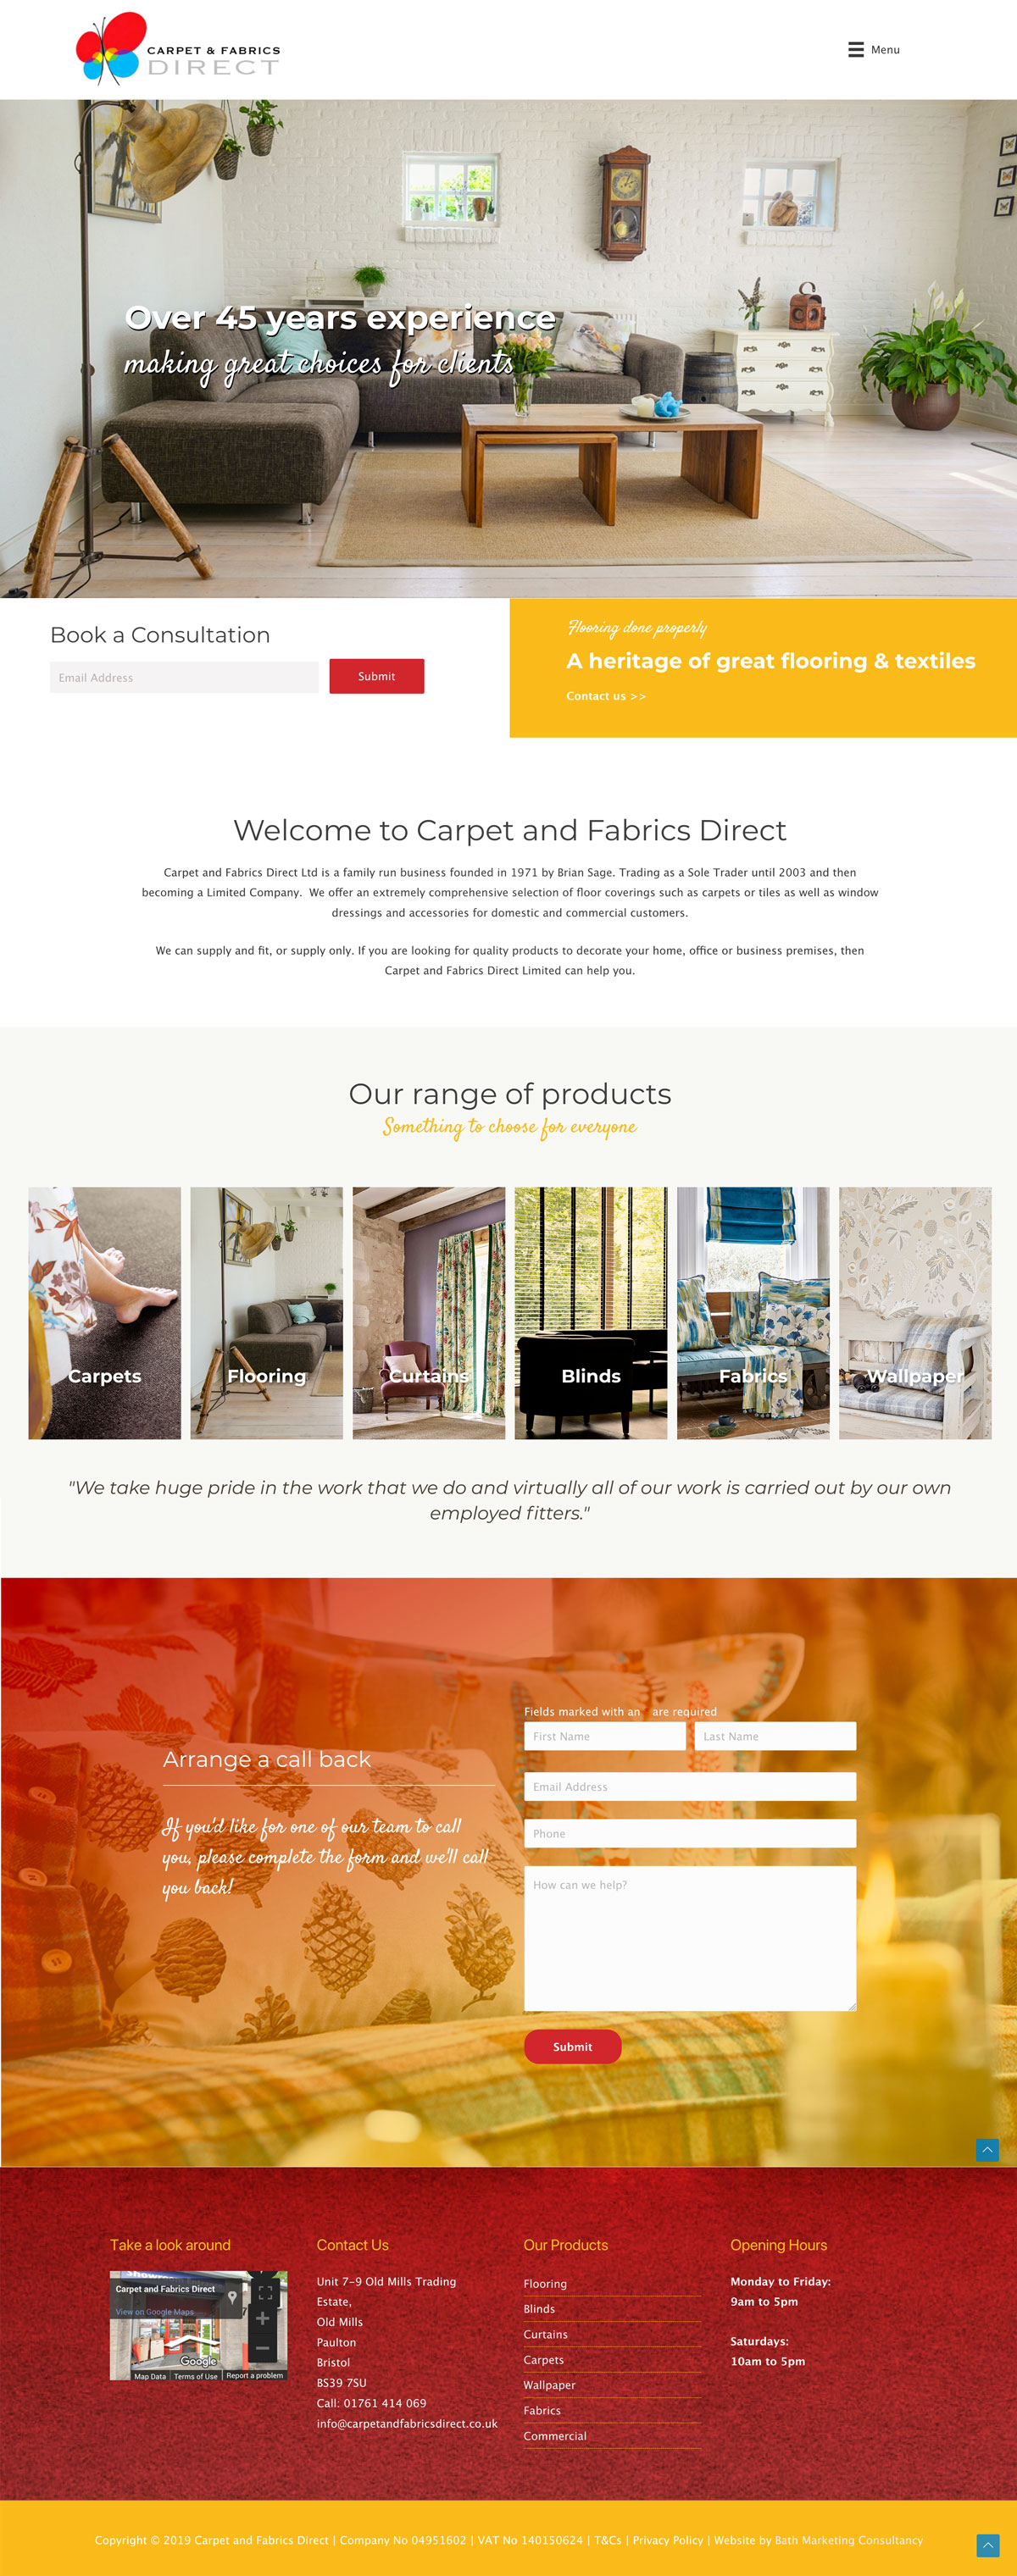 Carpet & Fabrics | Website Design | Bristol